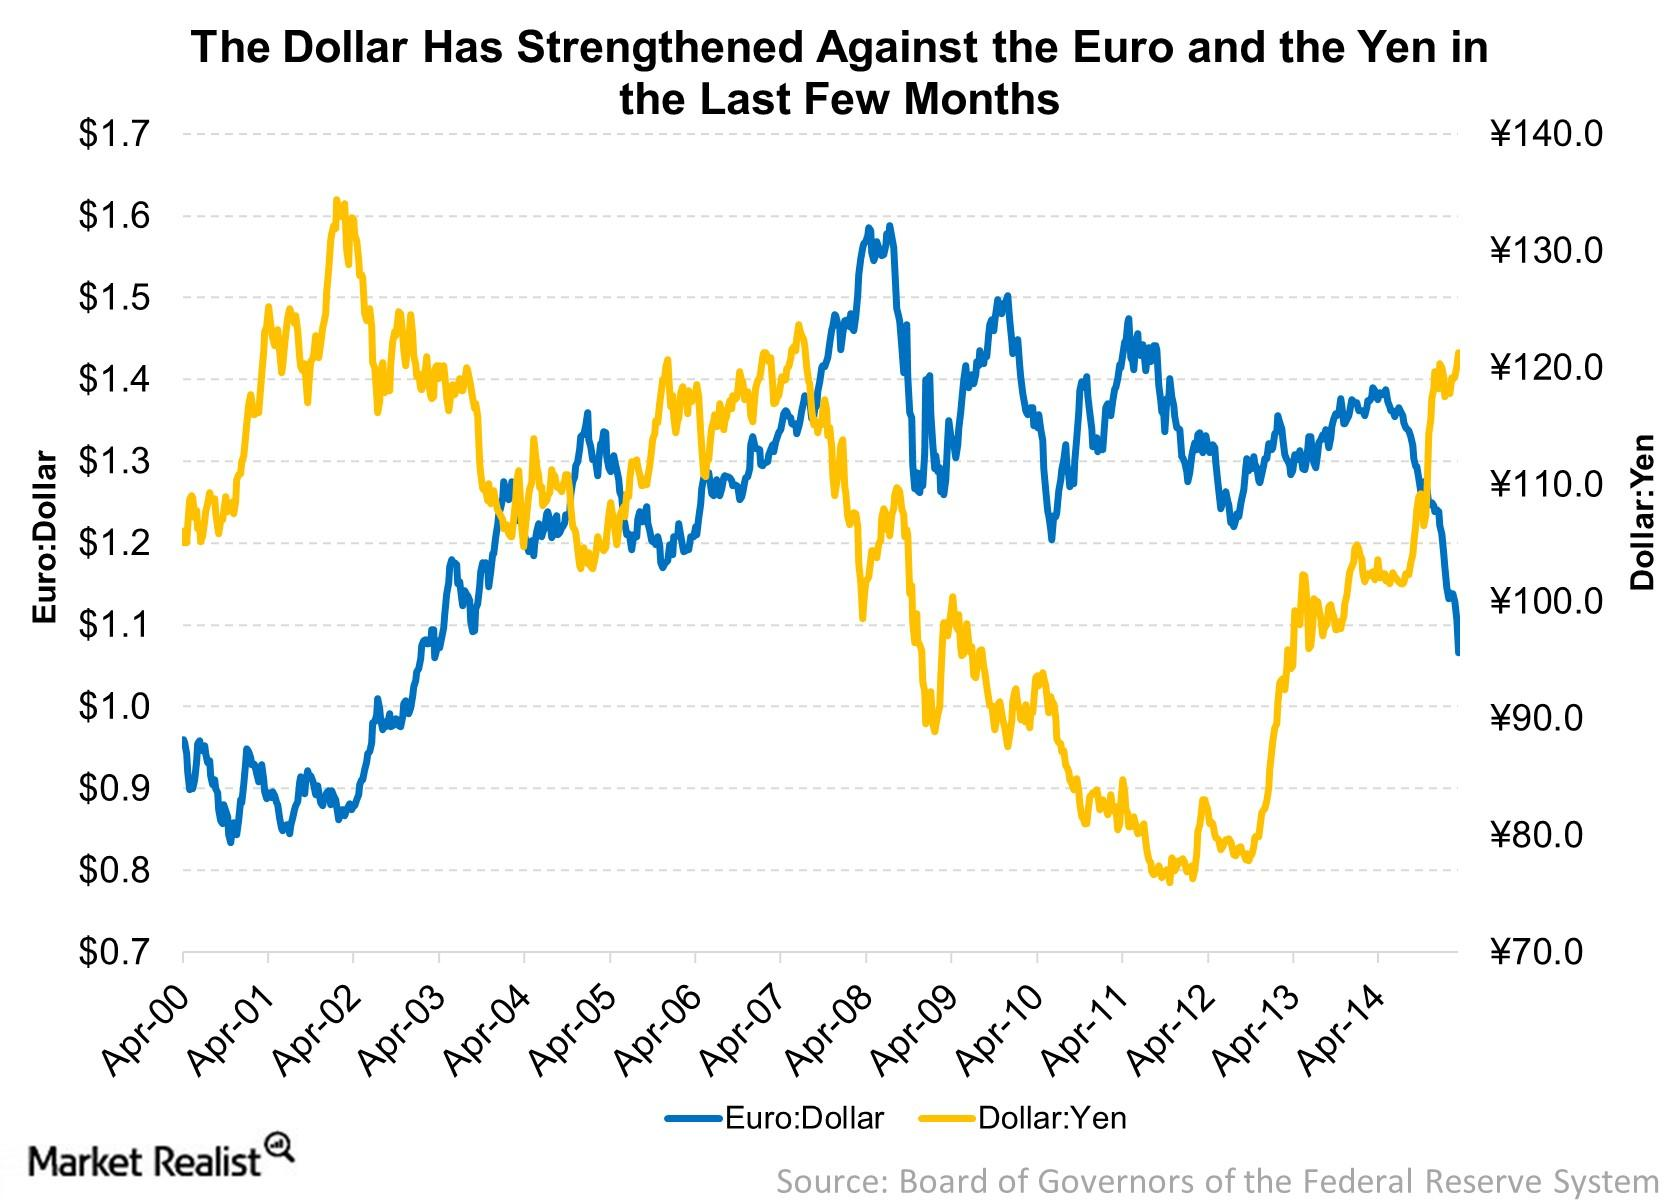 The strength in the US dollar is because of divergence in central bank policies.